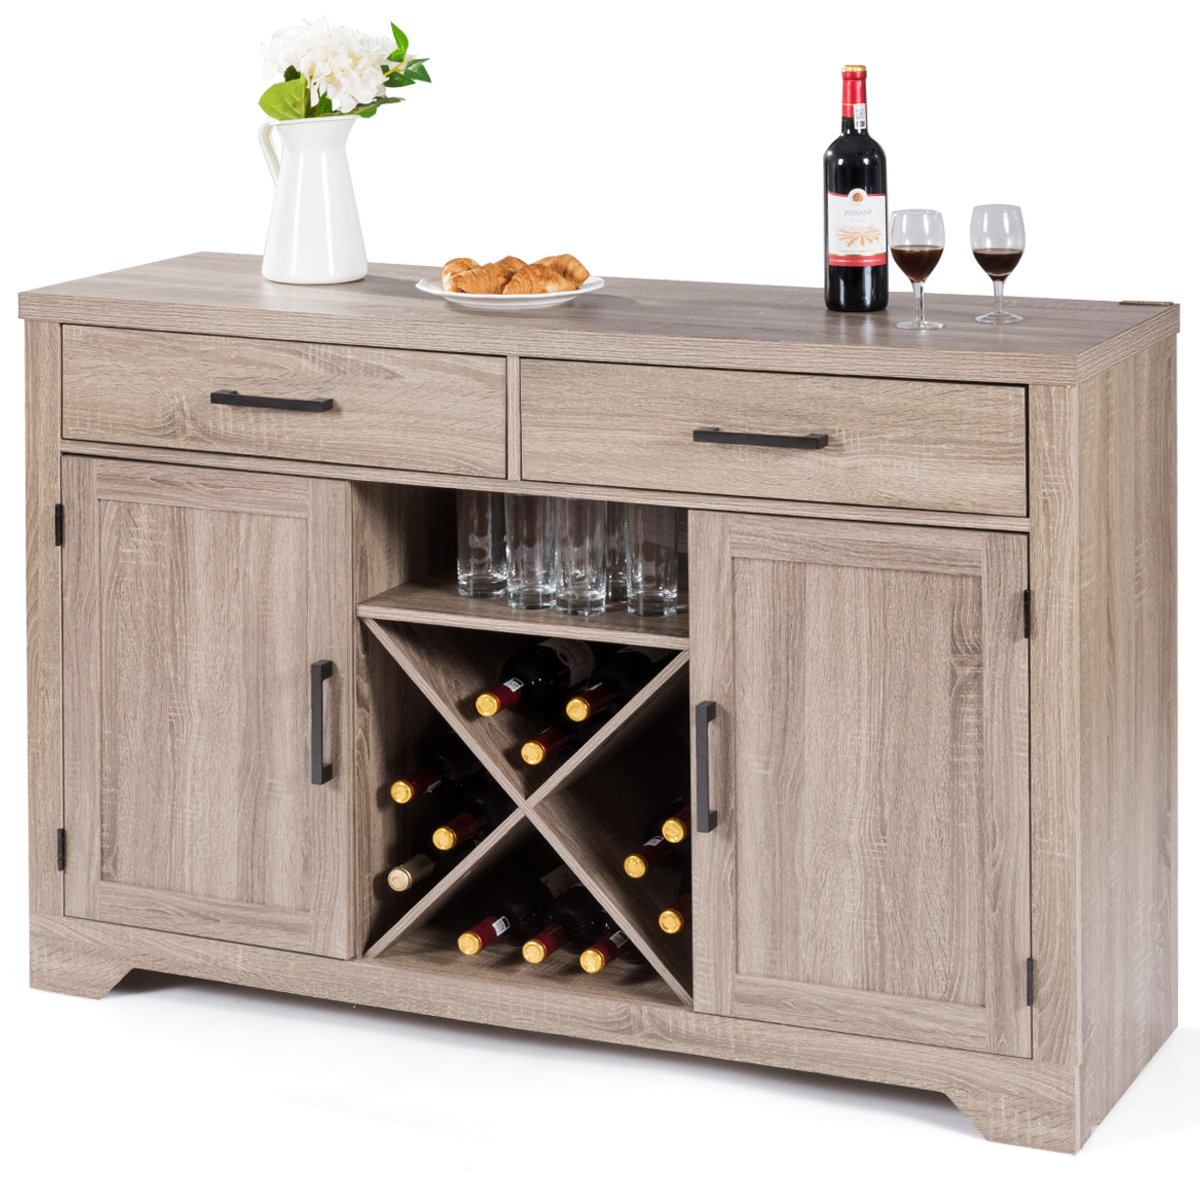 Costway: Costway Buffet Cabinet Sideboard Console Storage Cabinet With Two Drawers Two Cabinets   Rakuten Regarding 3 Drawer Titanium Buffets (View 15 of 20)